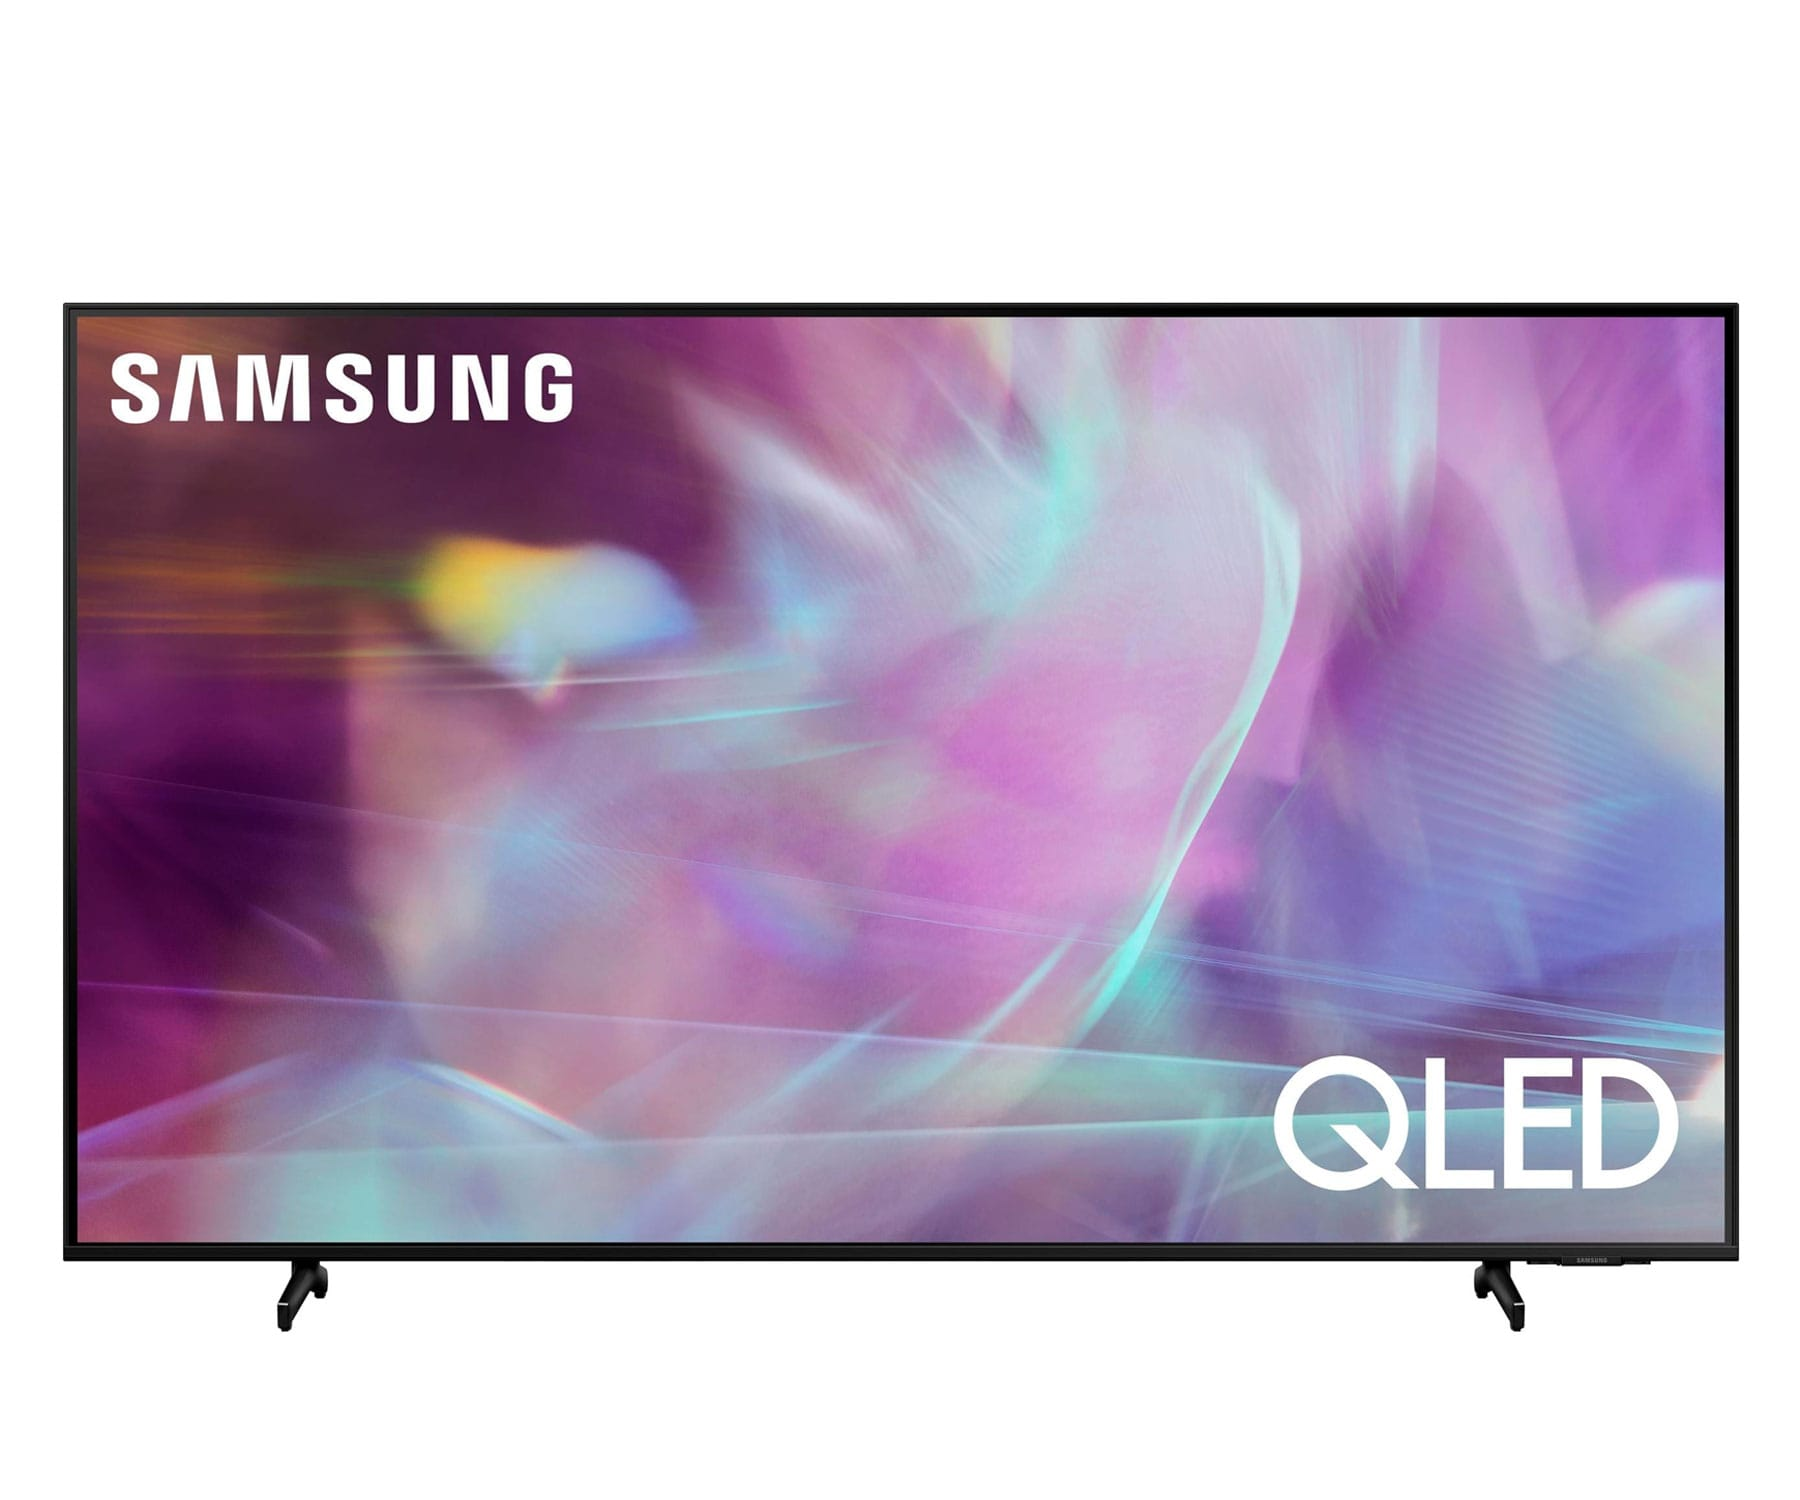 SAMSUNG QE43Q60AAUXXC NEGRO TELEVISOR 43'' QLED 4K SMART TV WIFI BLUETOOTH AMBIENT MODE